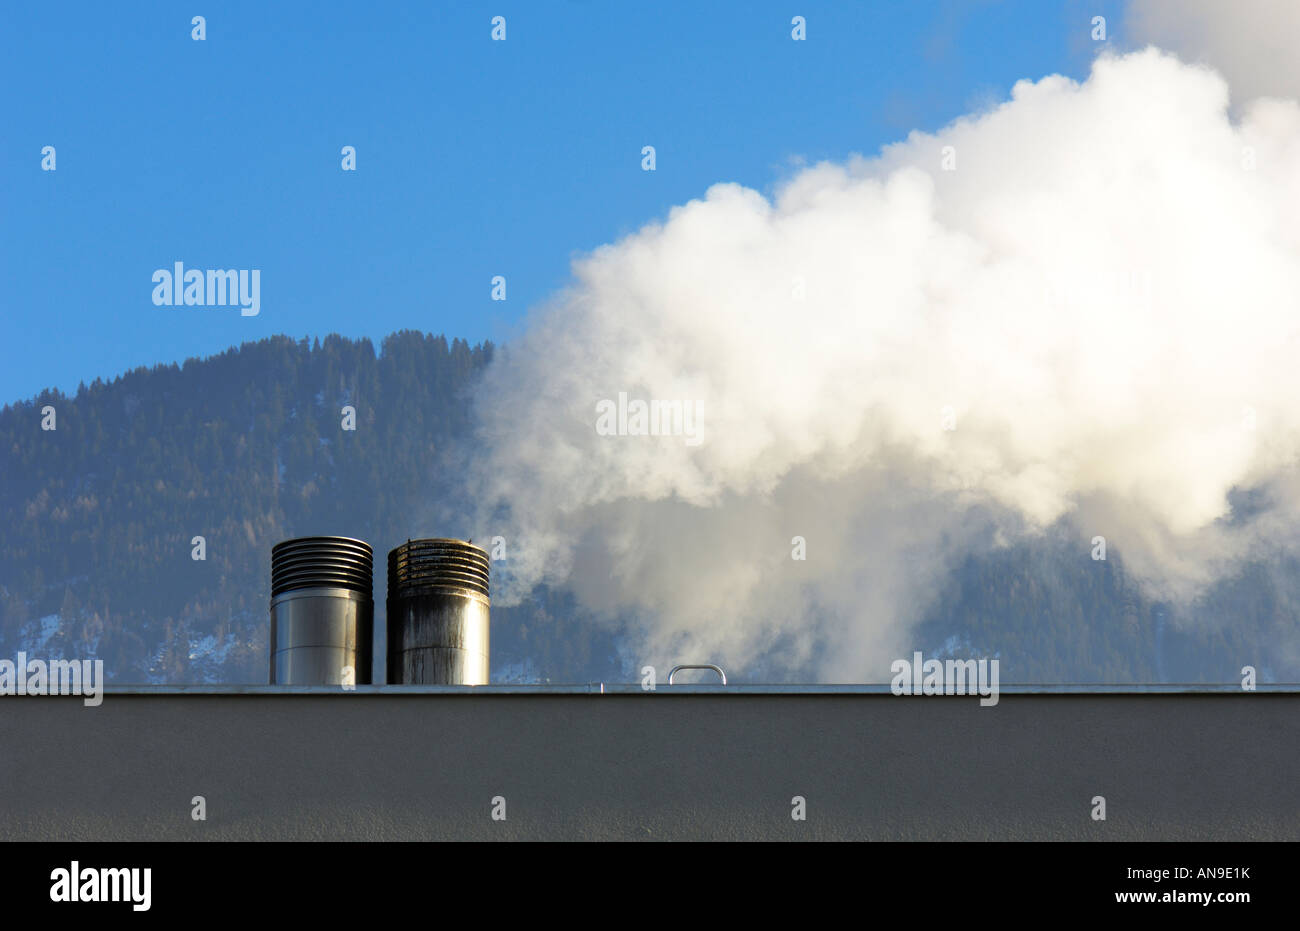 Two chimneys and white smoke - Stock Image